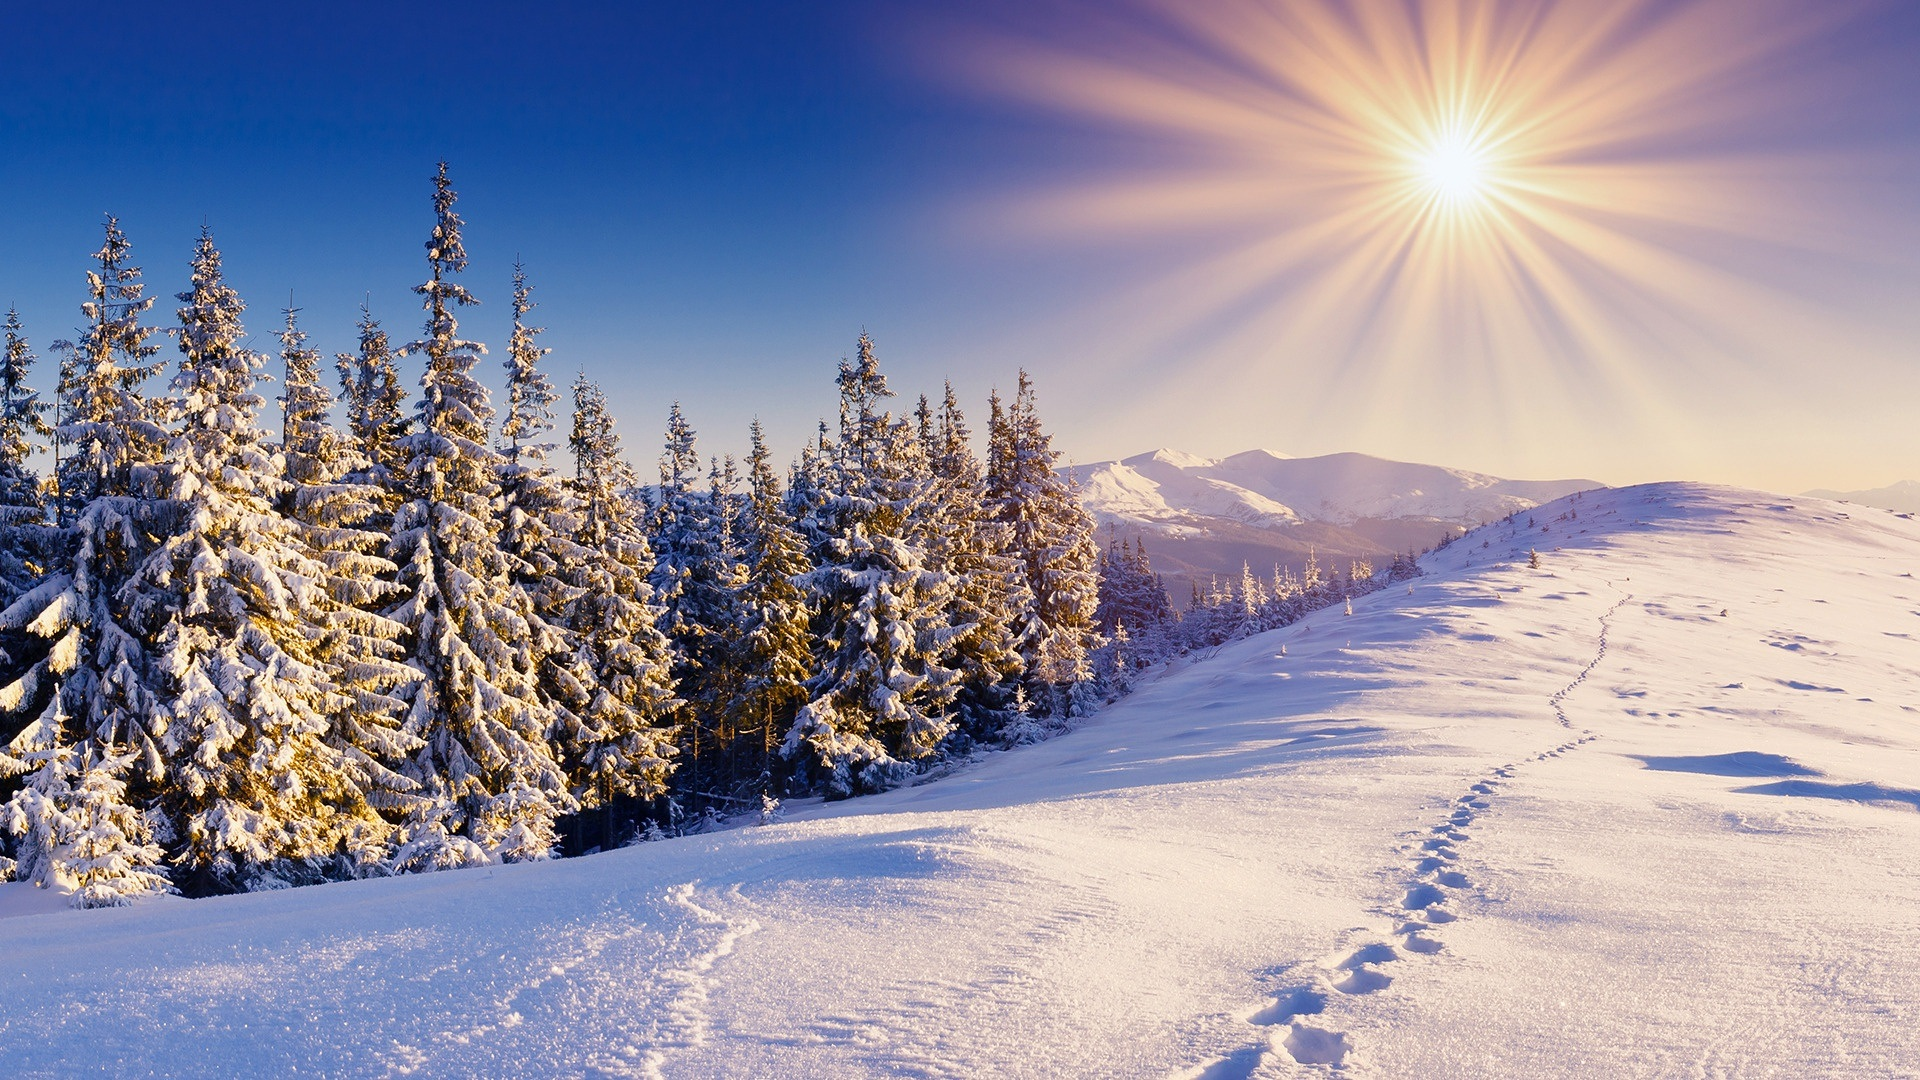 Winter Wallpapers High Quality  Download Free